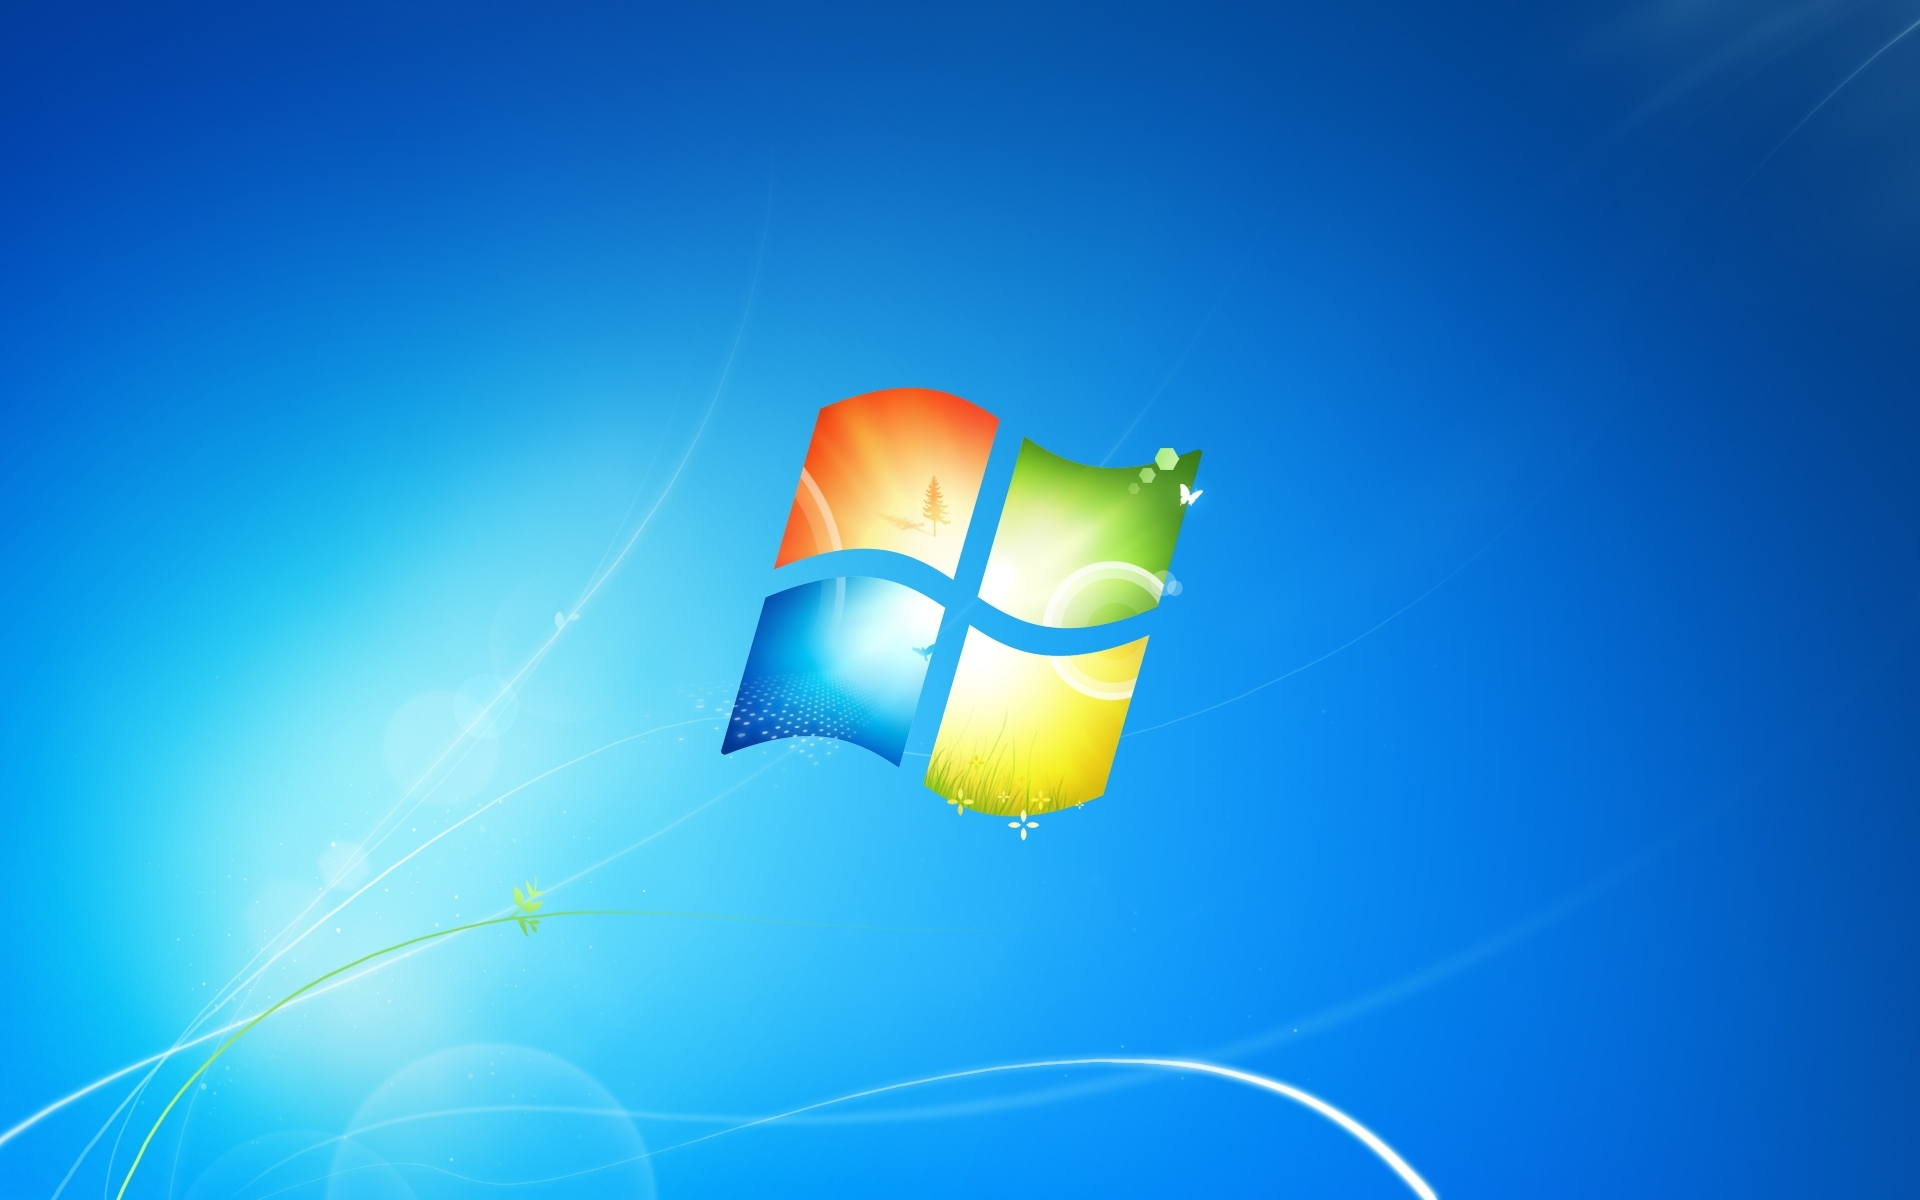 windows 7 default wallpapers - os wallpapers